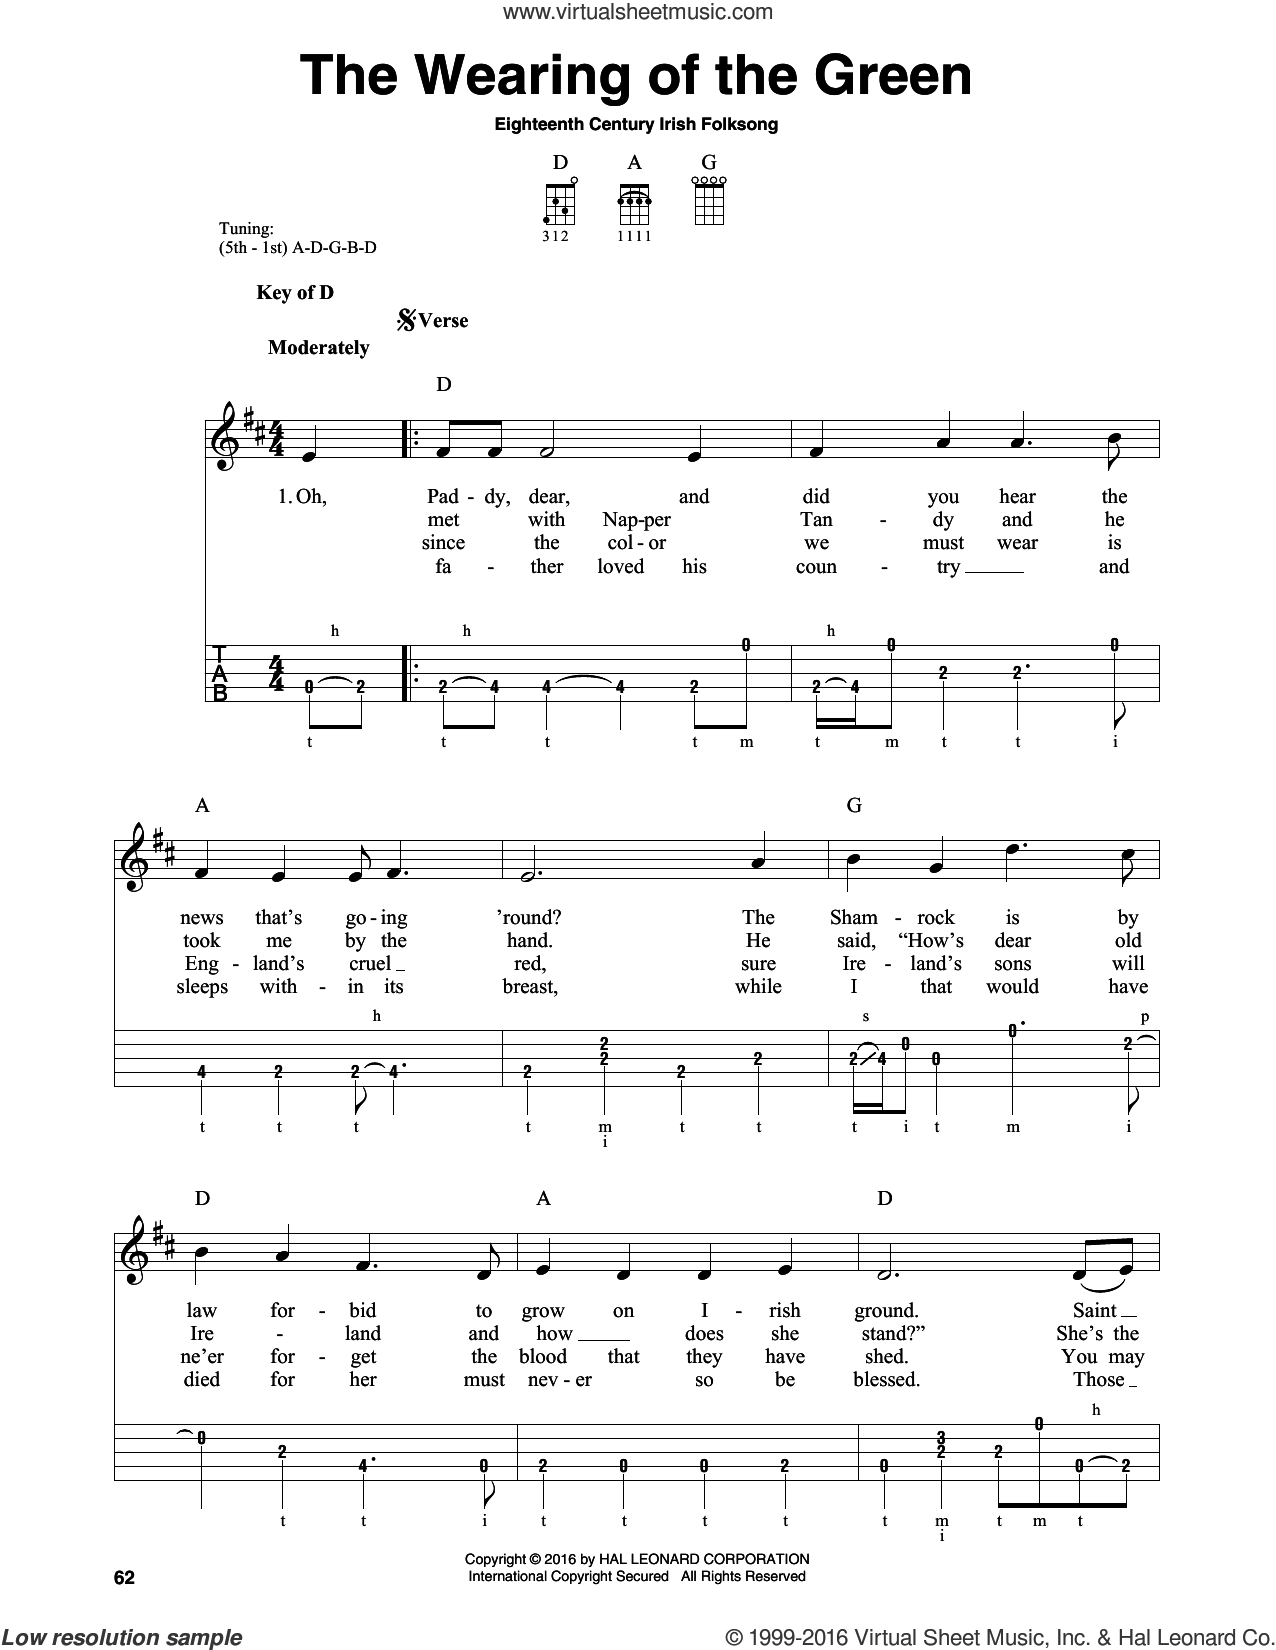 The Wearing Of The Green sheet music for banjo solo, intermediate